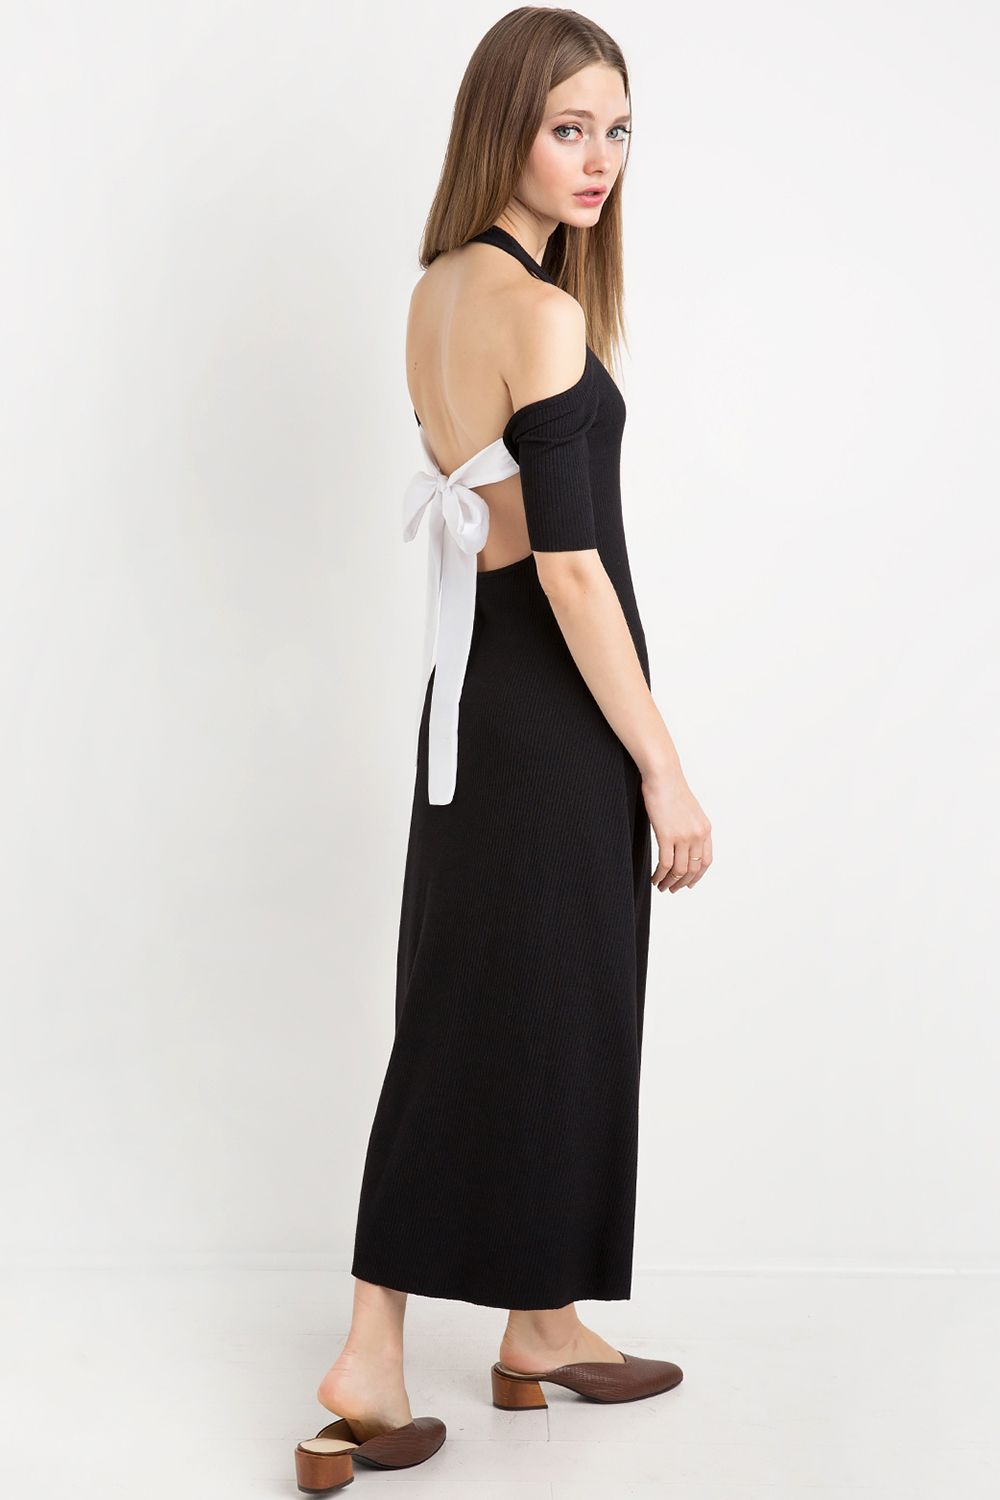 "<p>When you love a <a href=""http://www.marieclaire.com/fashion/news/g3650/spring-tops-earrings/"" target=""_blank"">tie-back bodysuit</a> so much you buy the dress version of it. (The <a href=""http://www.marieclaire.com/fashion/news/g3650/spring-tops-earrings/"" target=""_blank"">earring pairing</a> still stands.) </p><p>$112, <a href=""http://www.pixiemarket.com/sunday-tie-back-midi-dress-by-new-revival.html"" target=""_blank"">pixiemarket.com</a>.</p>"